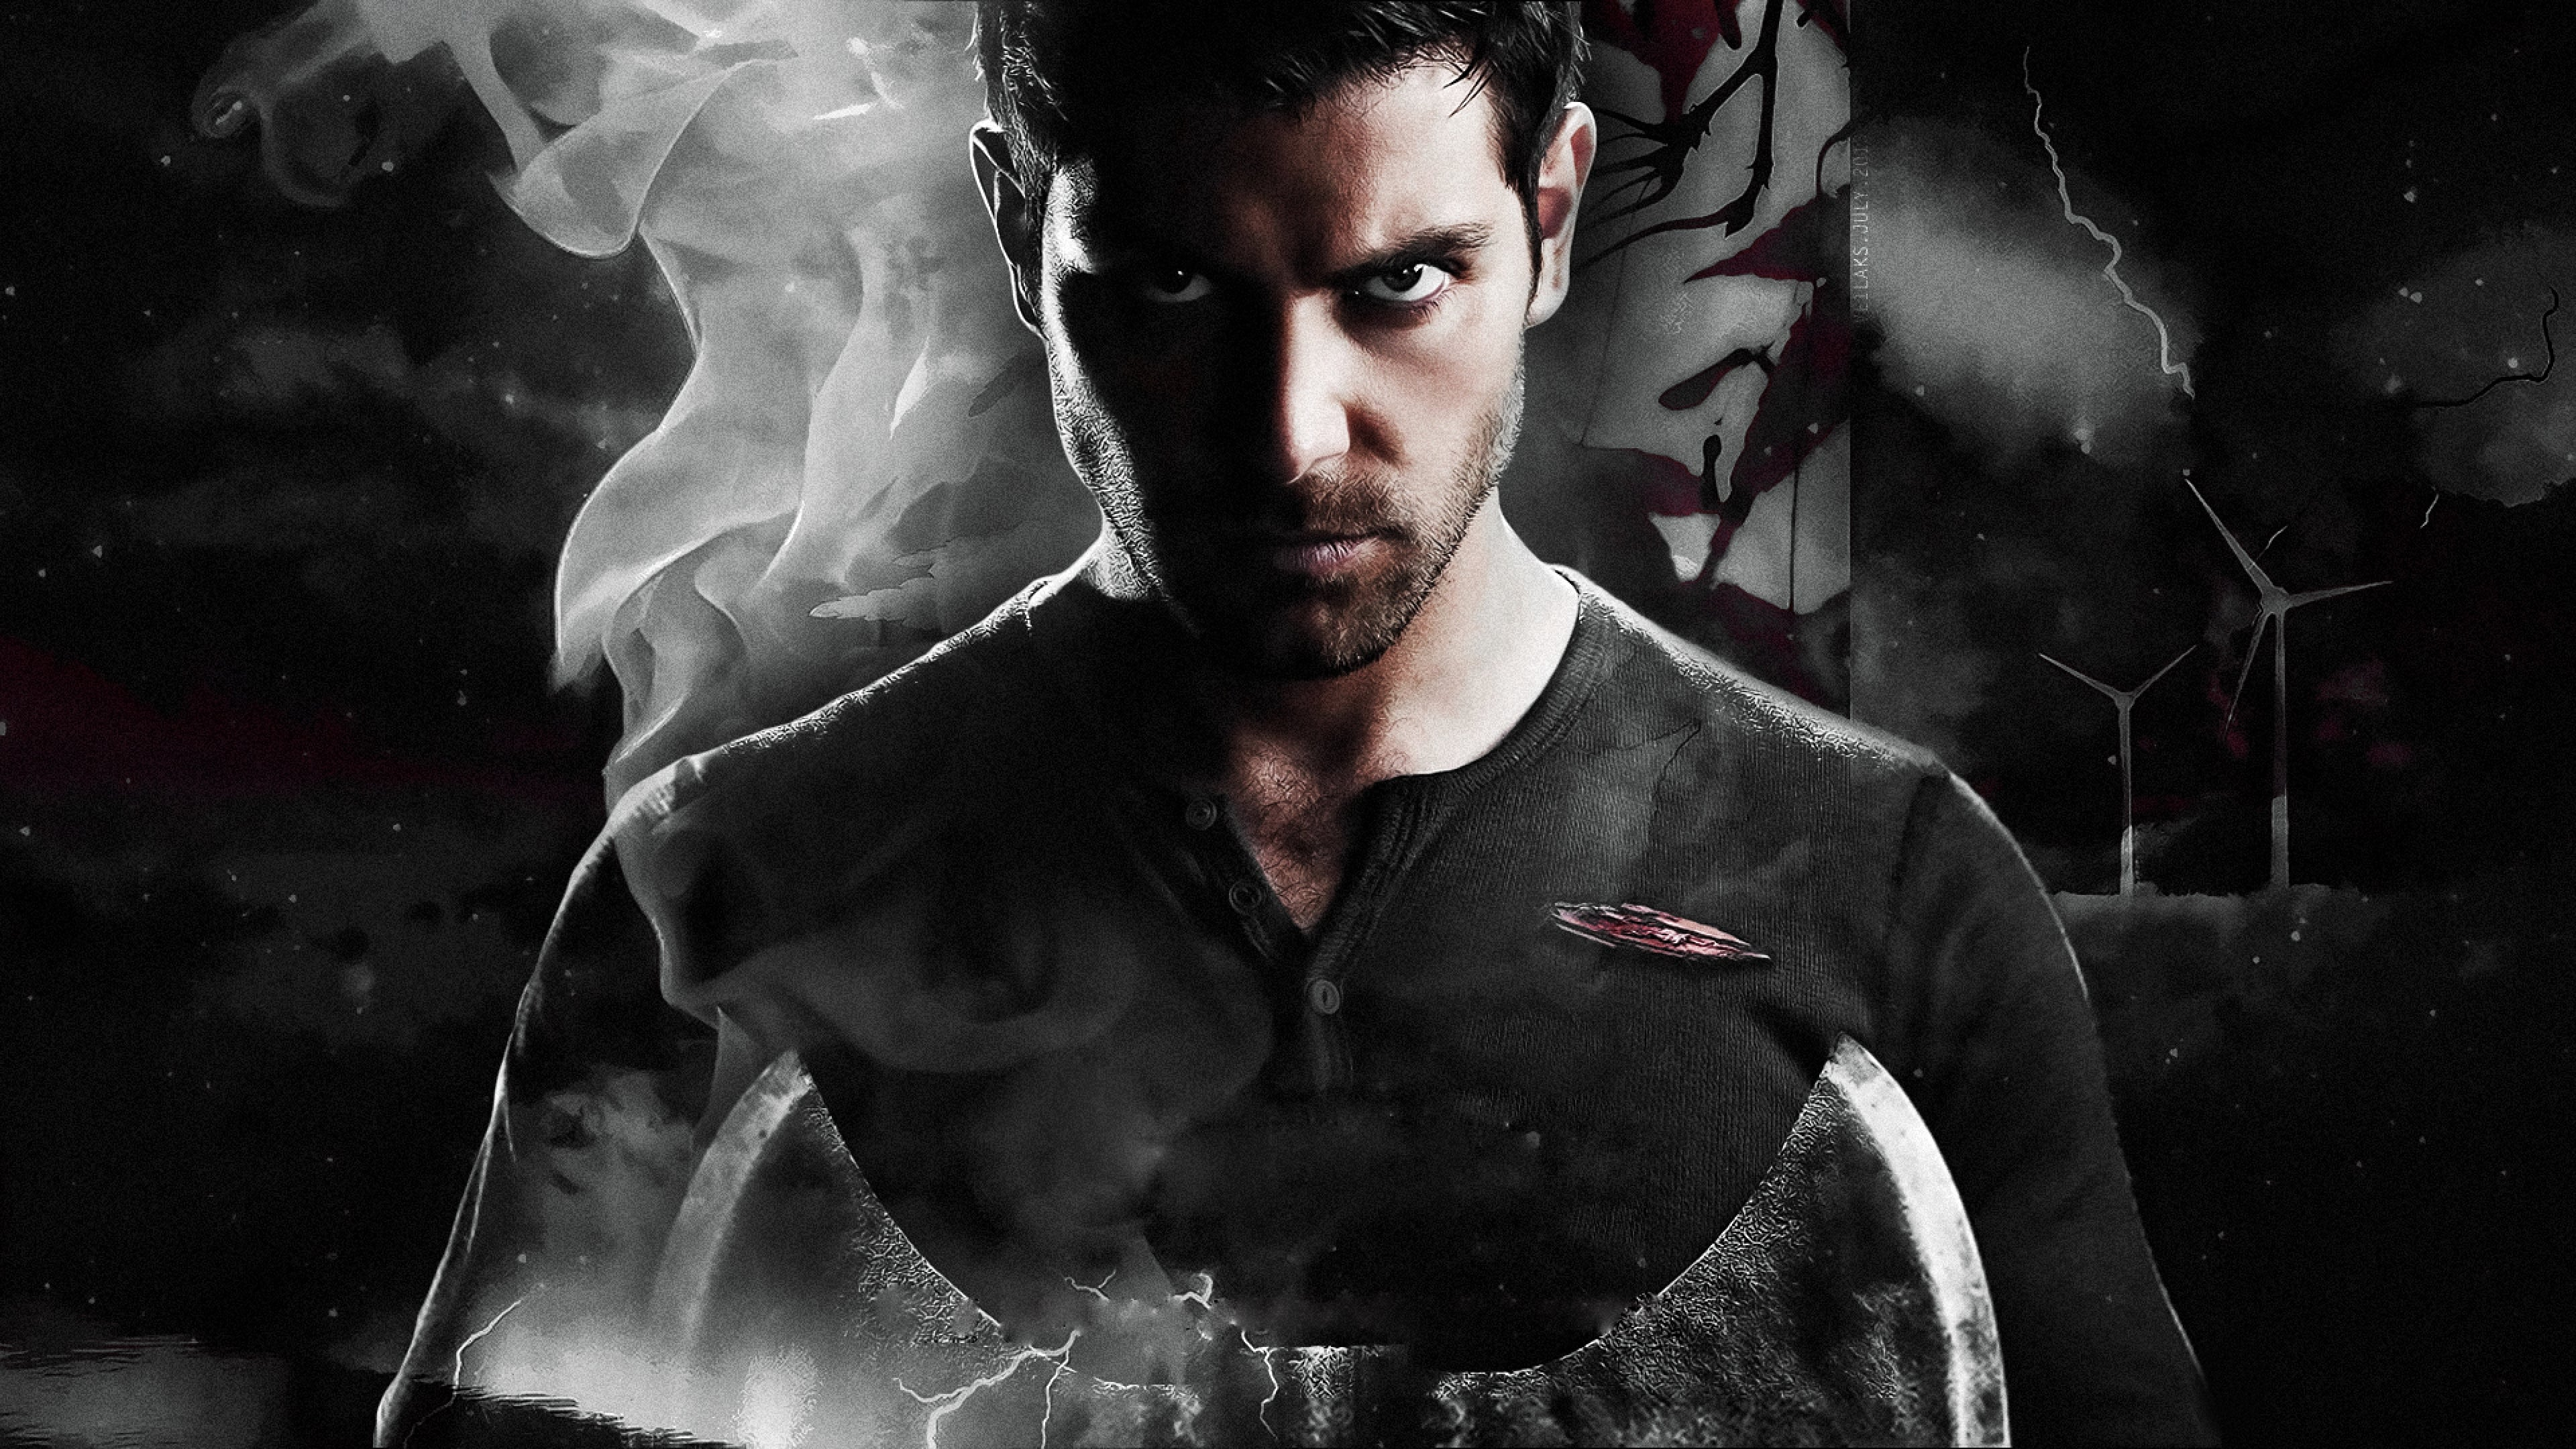 Watch Full Grimm Season 3 episode TV Series Without Downloading